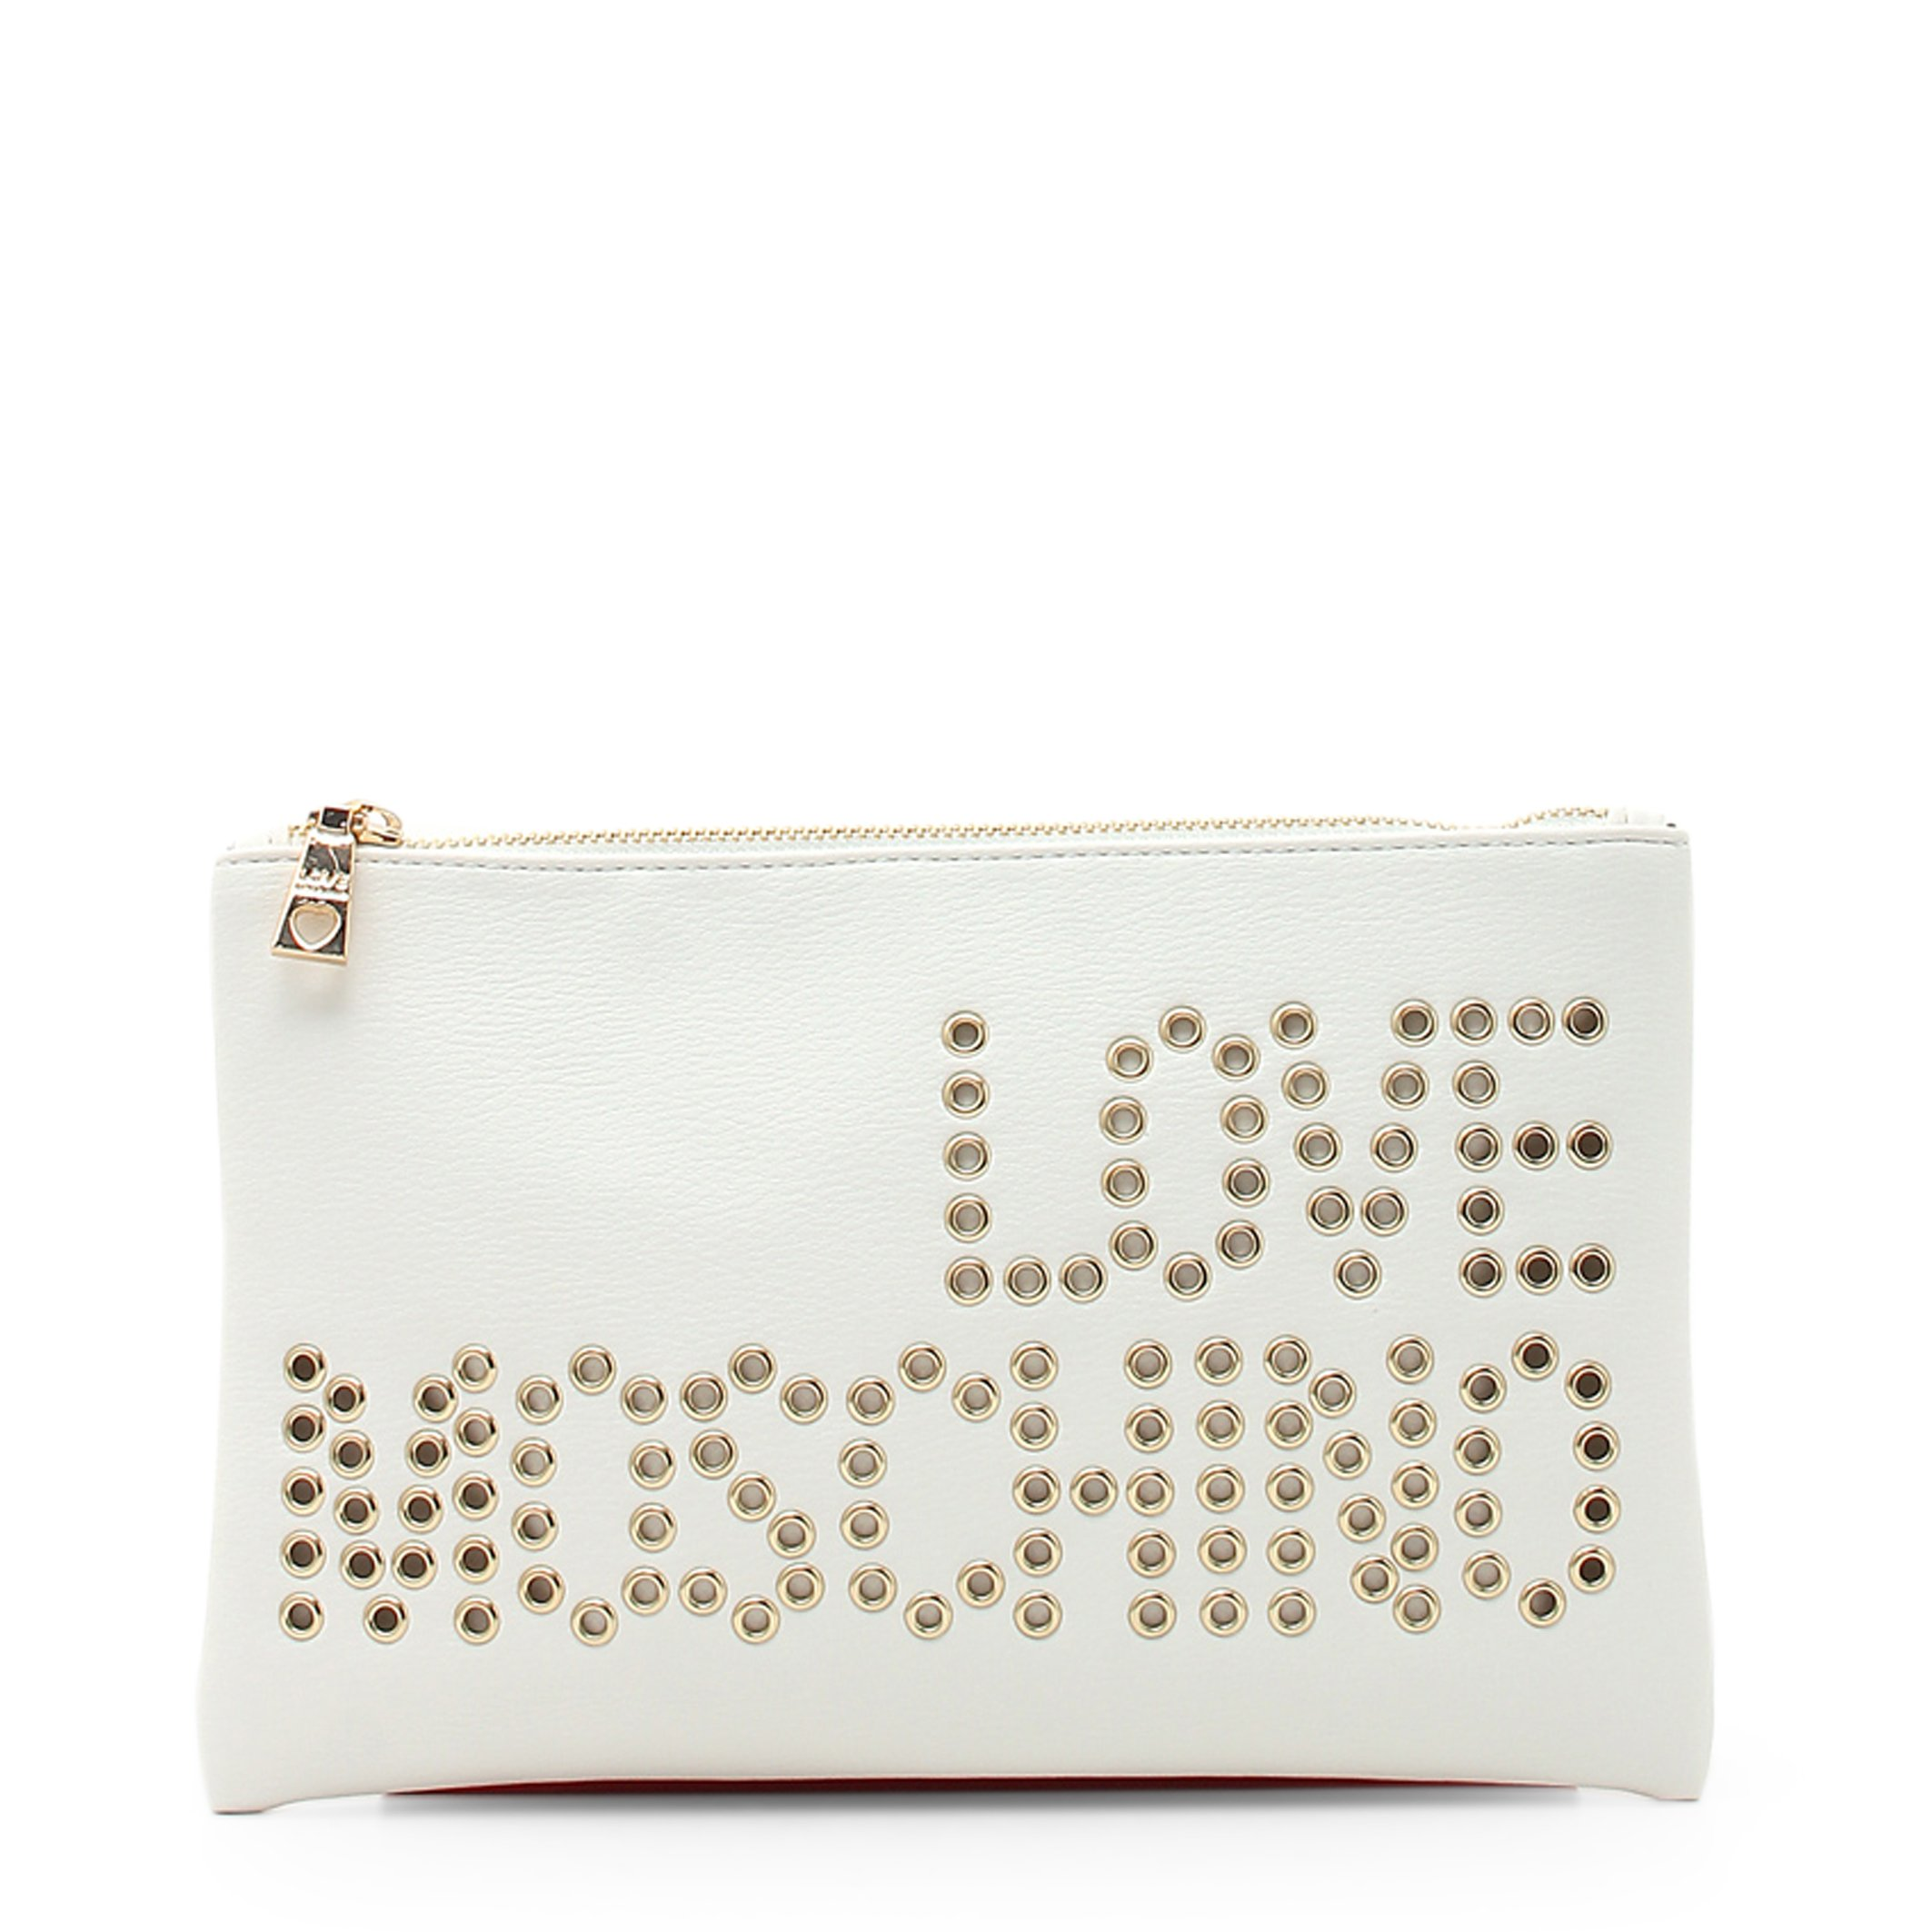 Love Moschino Women's Clutch Bag Various Colours JC4227PP0CKD0 - white NOSIZE